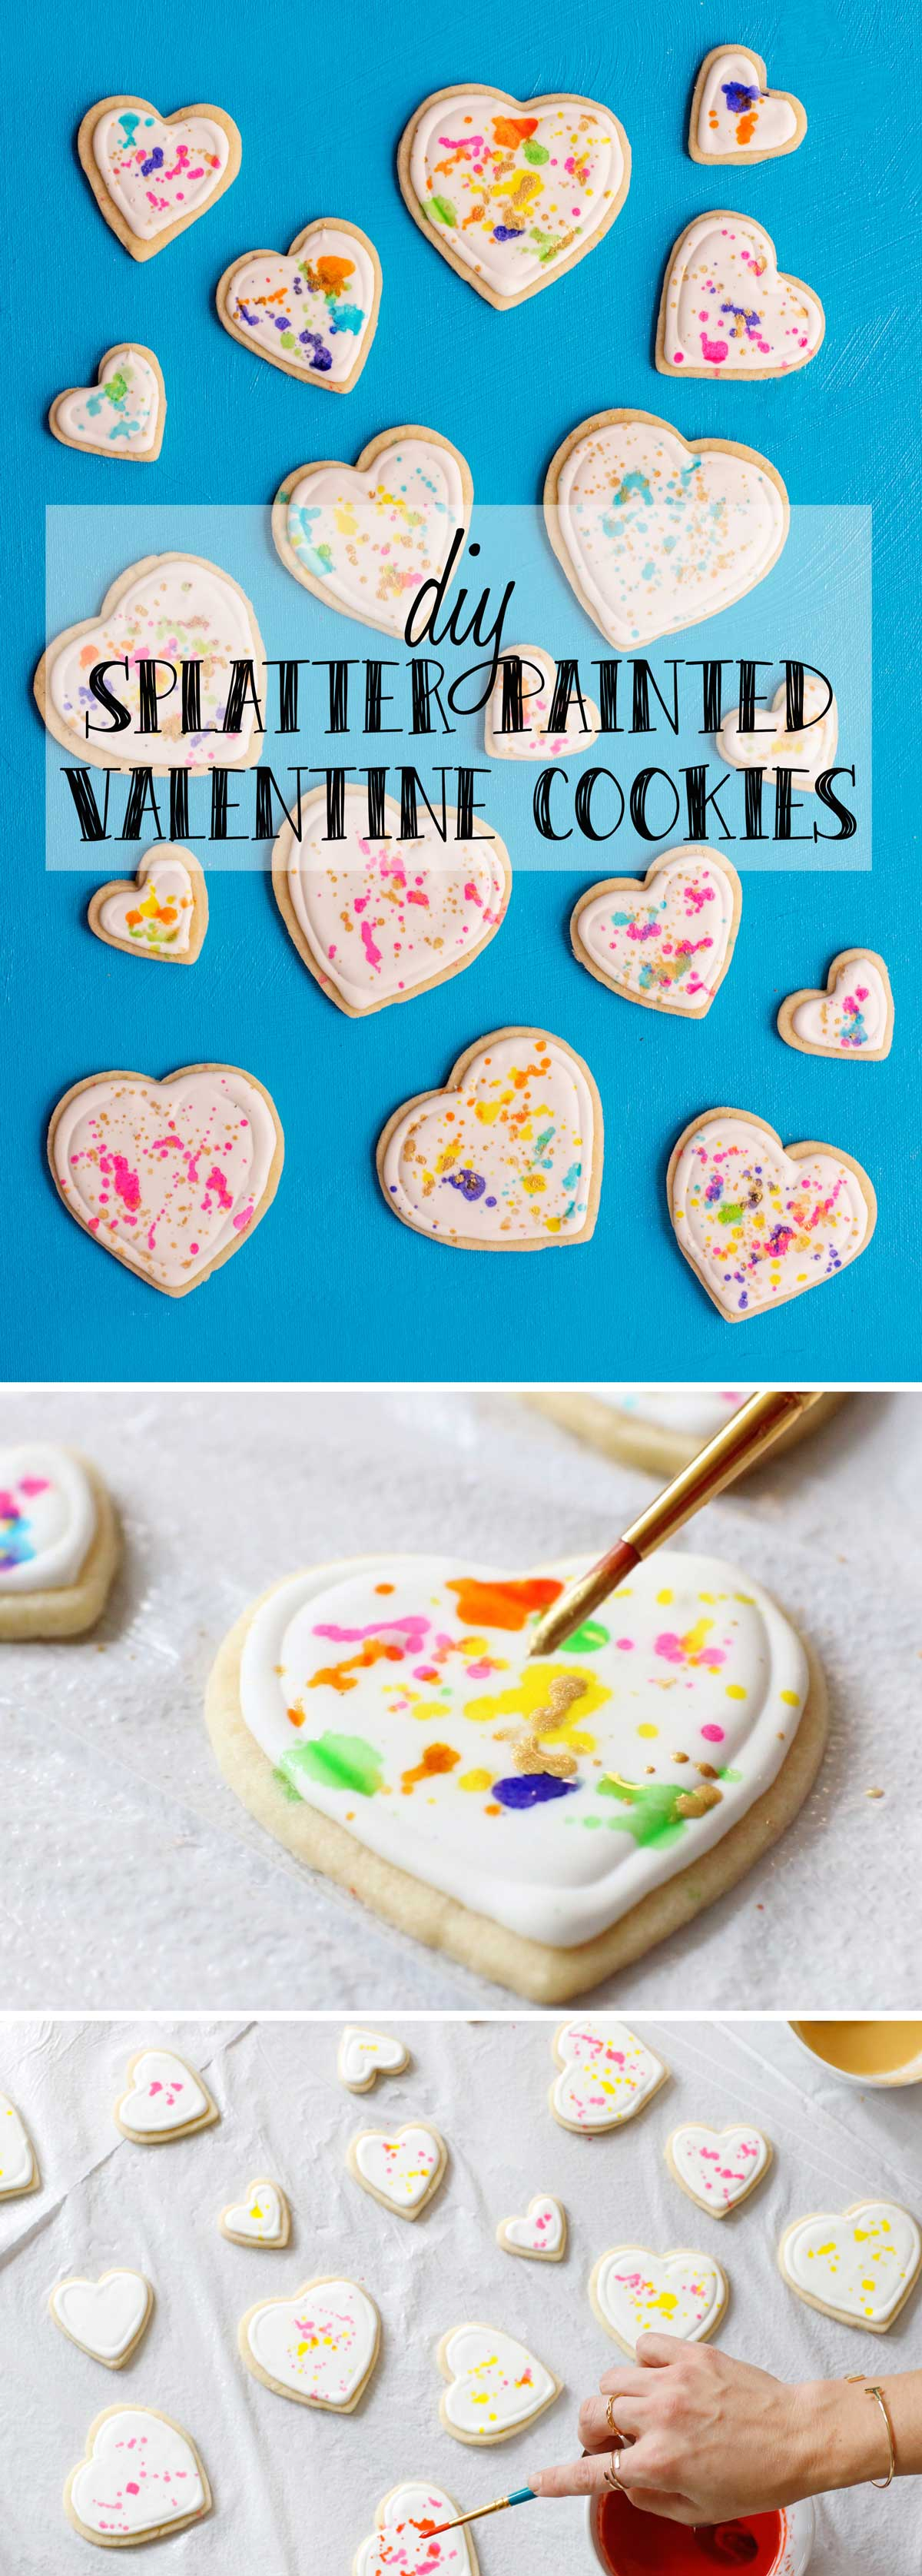 Fun Valentine's Day DIY Idea - Make Colorful Splatter Painted Heart Cookies